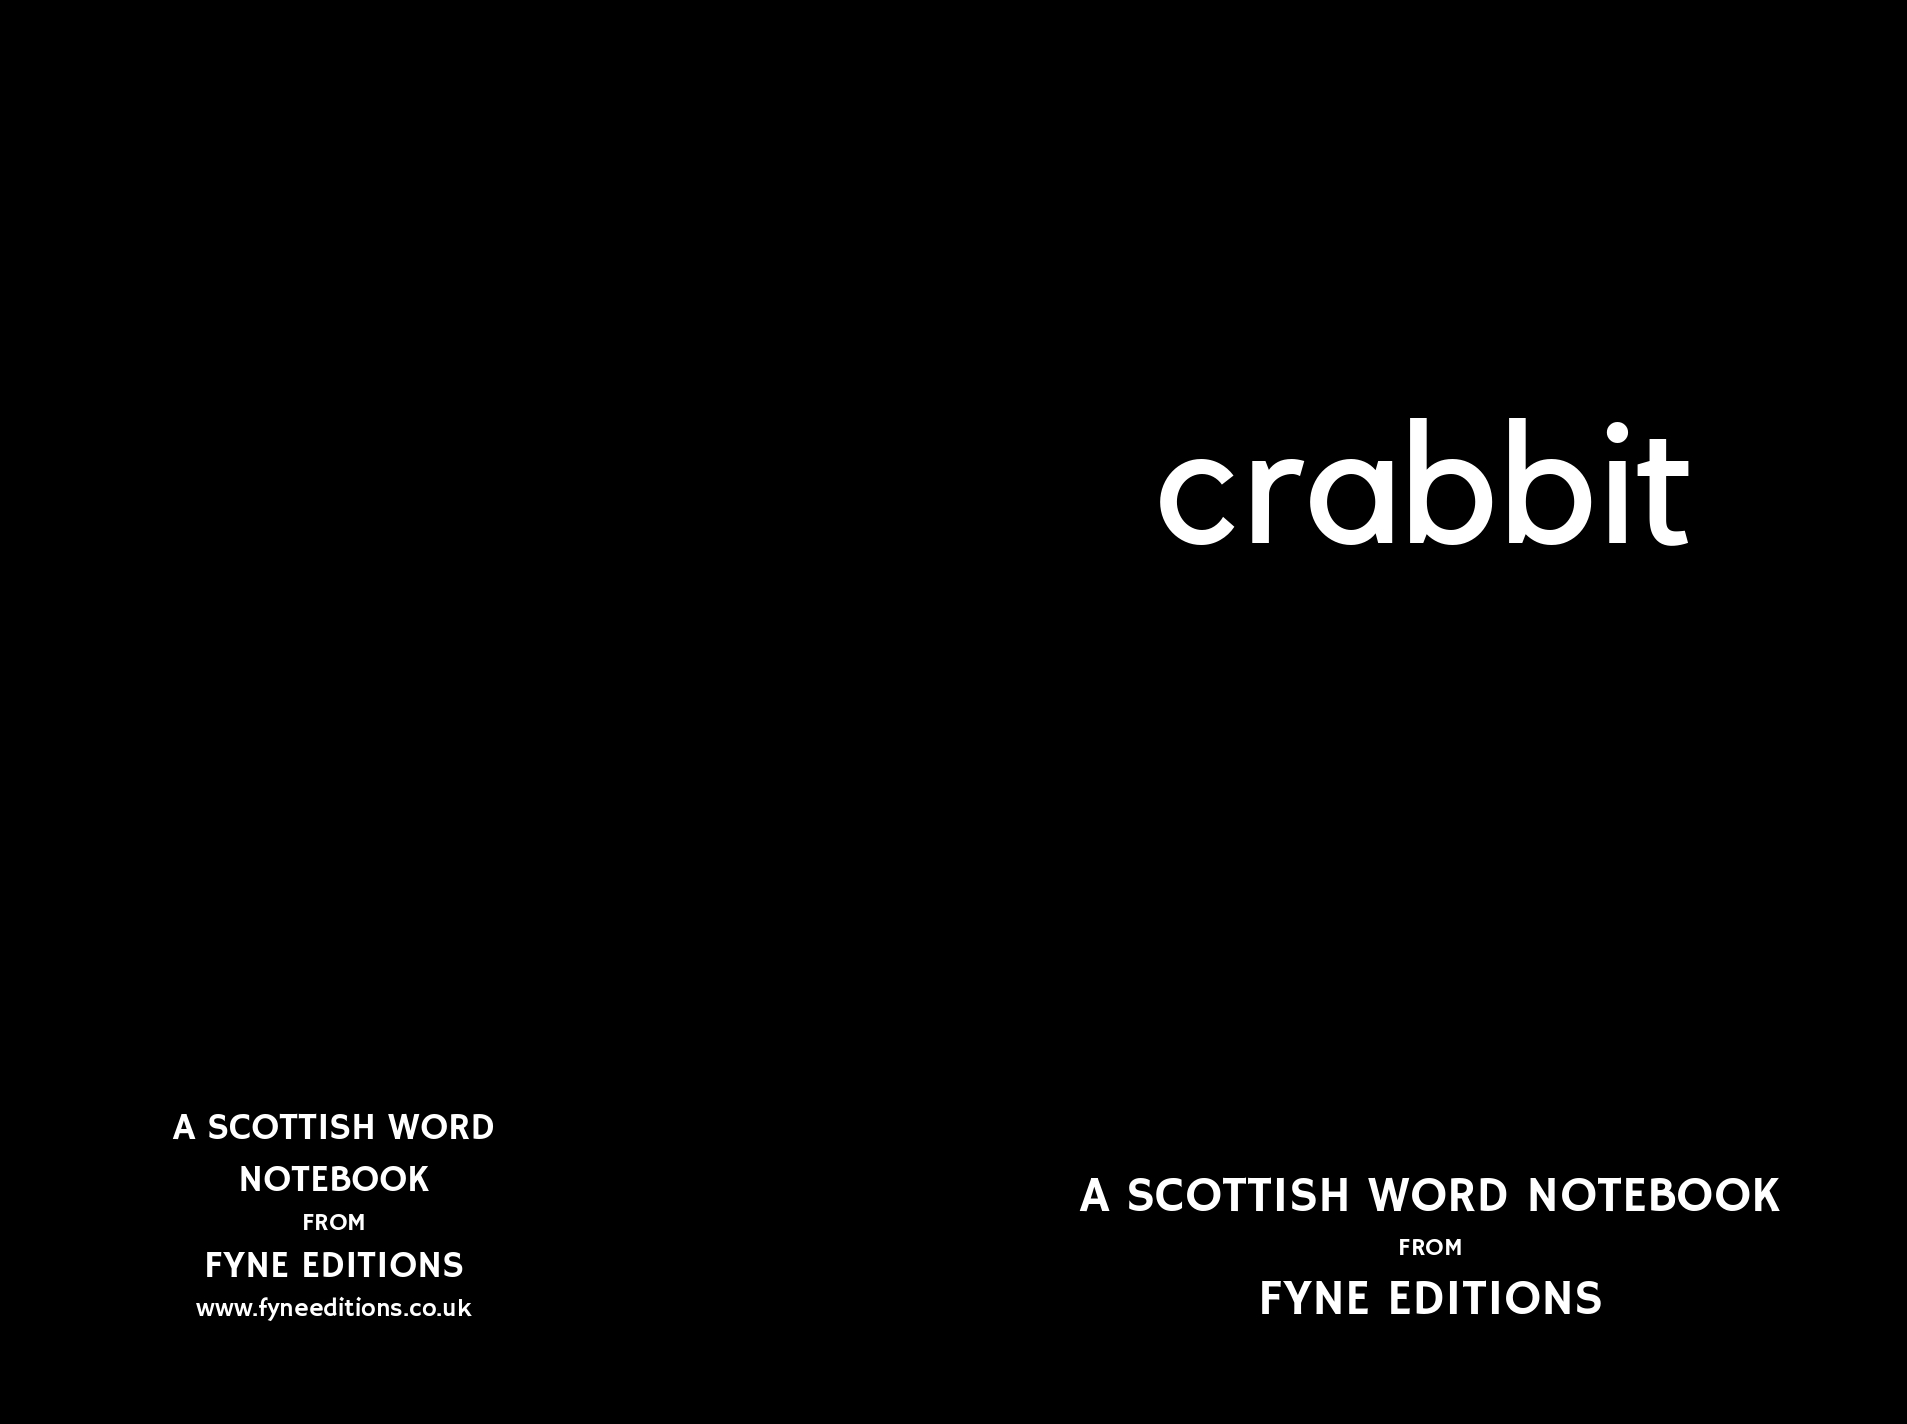 Crabbit - A Scottish Words Notebook